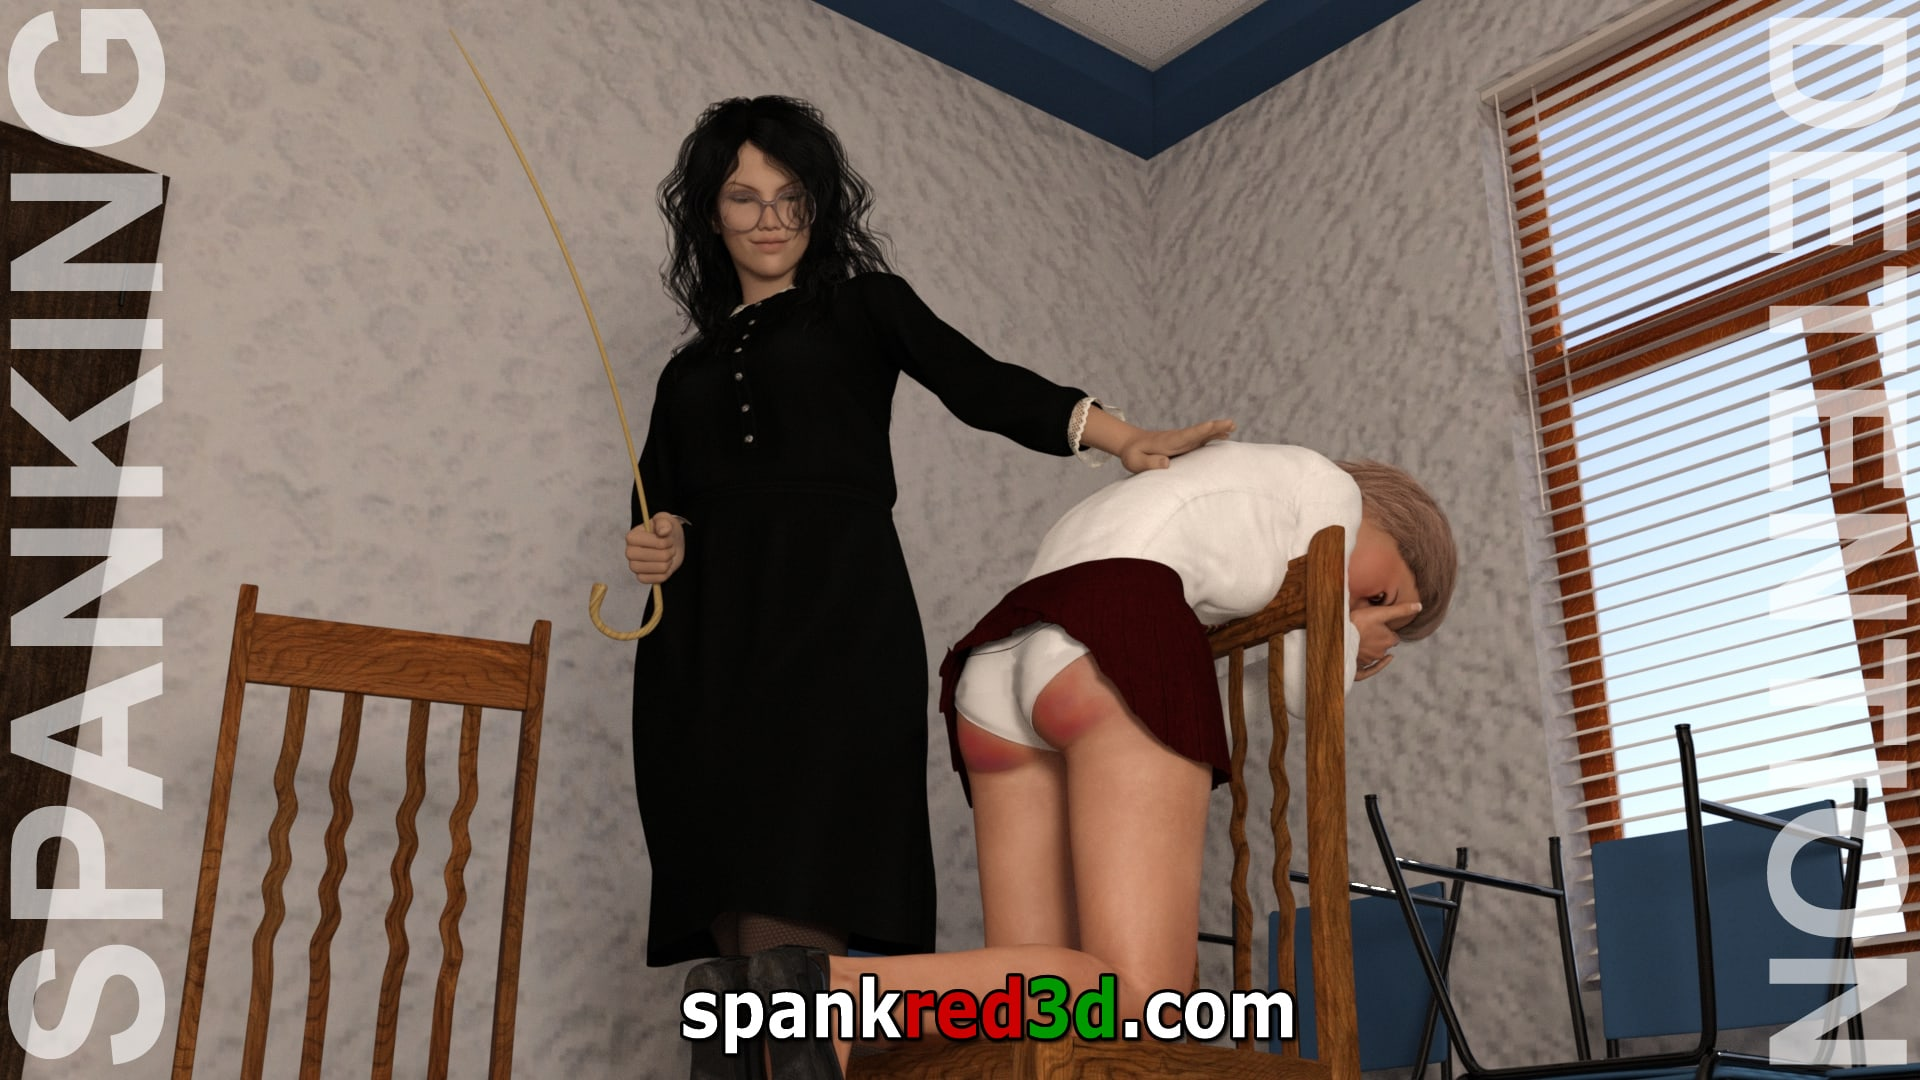 Schoolgirl caning during detention after her bottom has had a warm up spanking